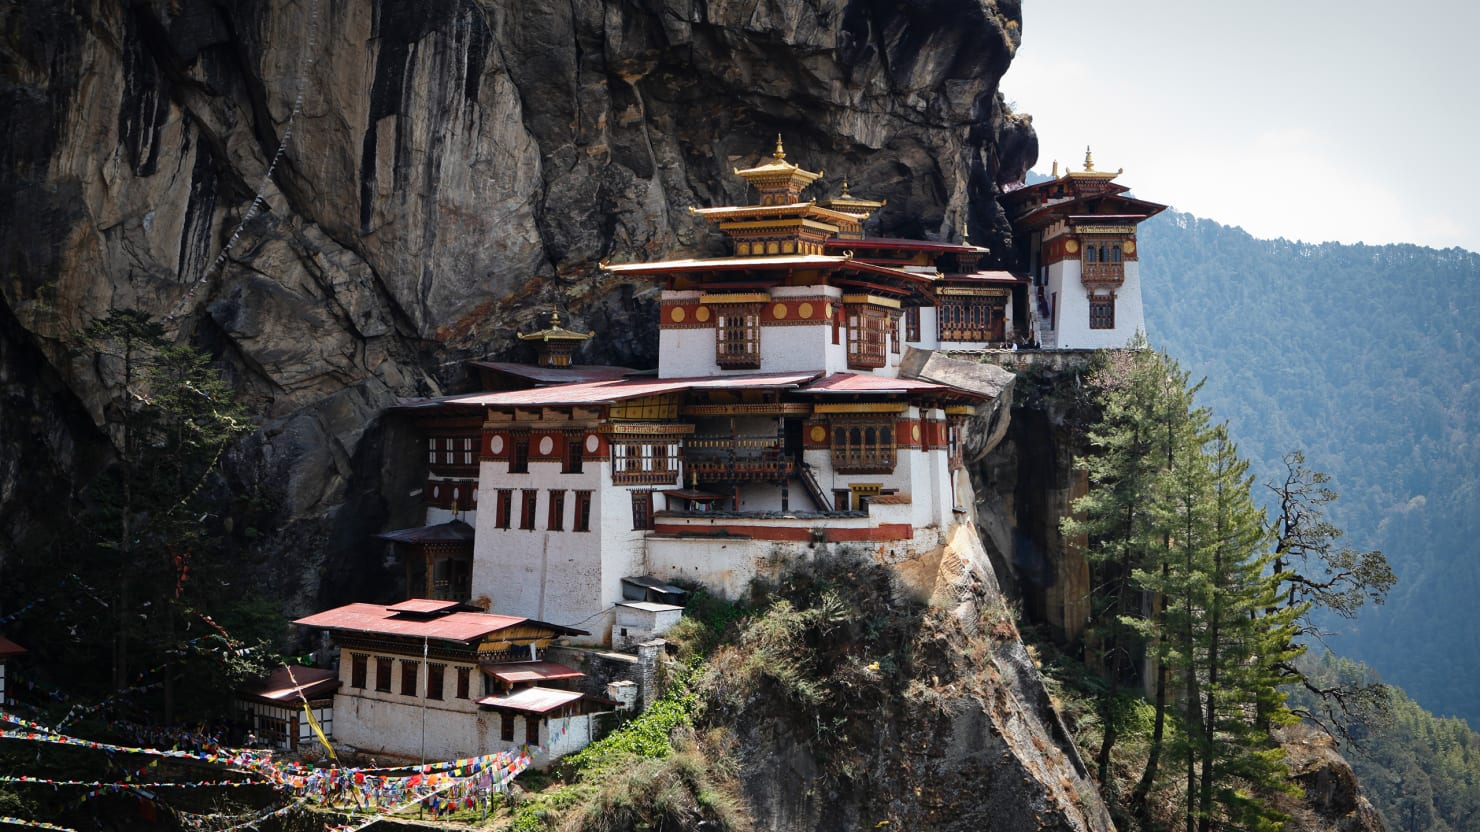 The Tiger's Nest May Make You Start Planning a Trip to Bhutan